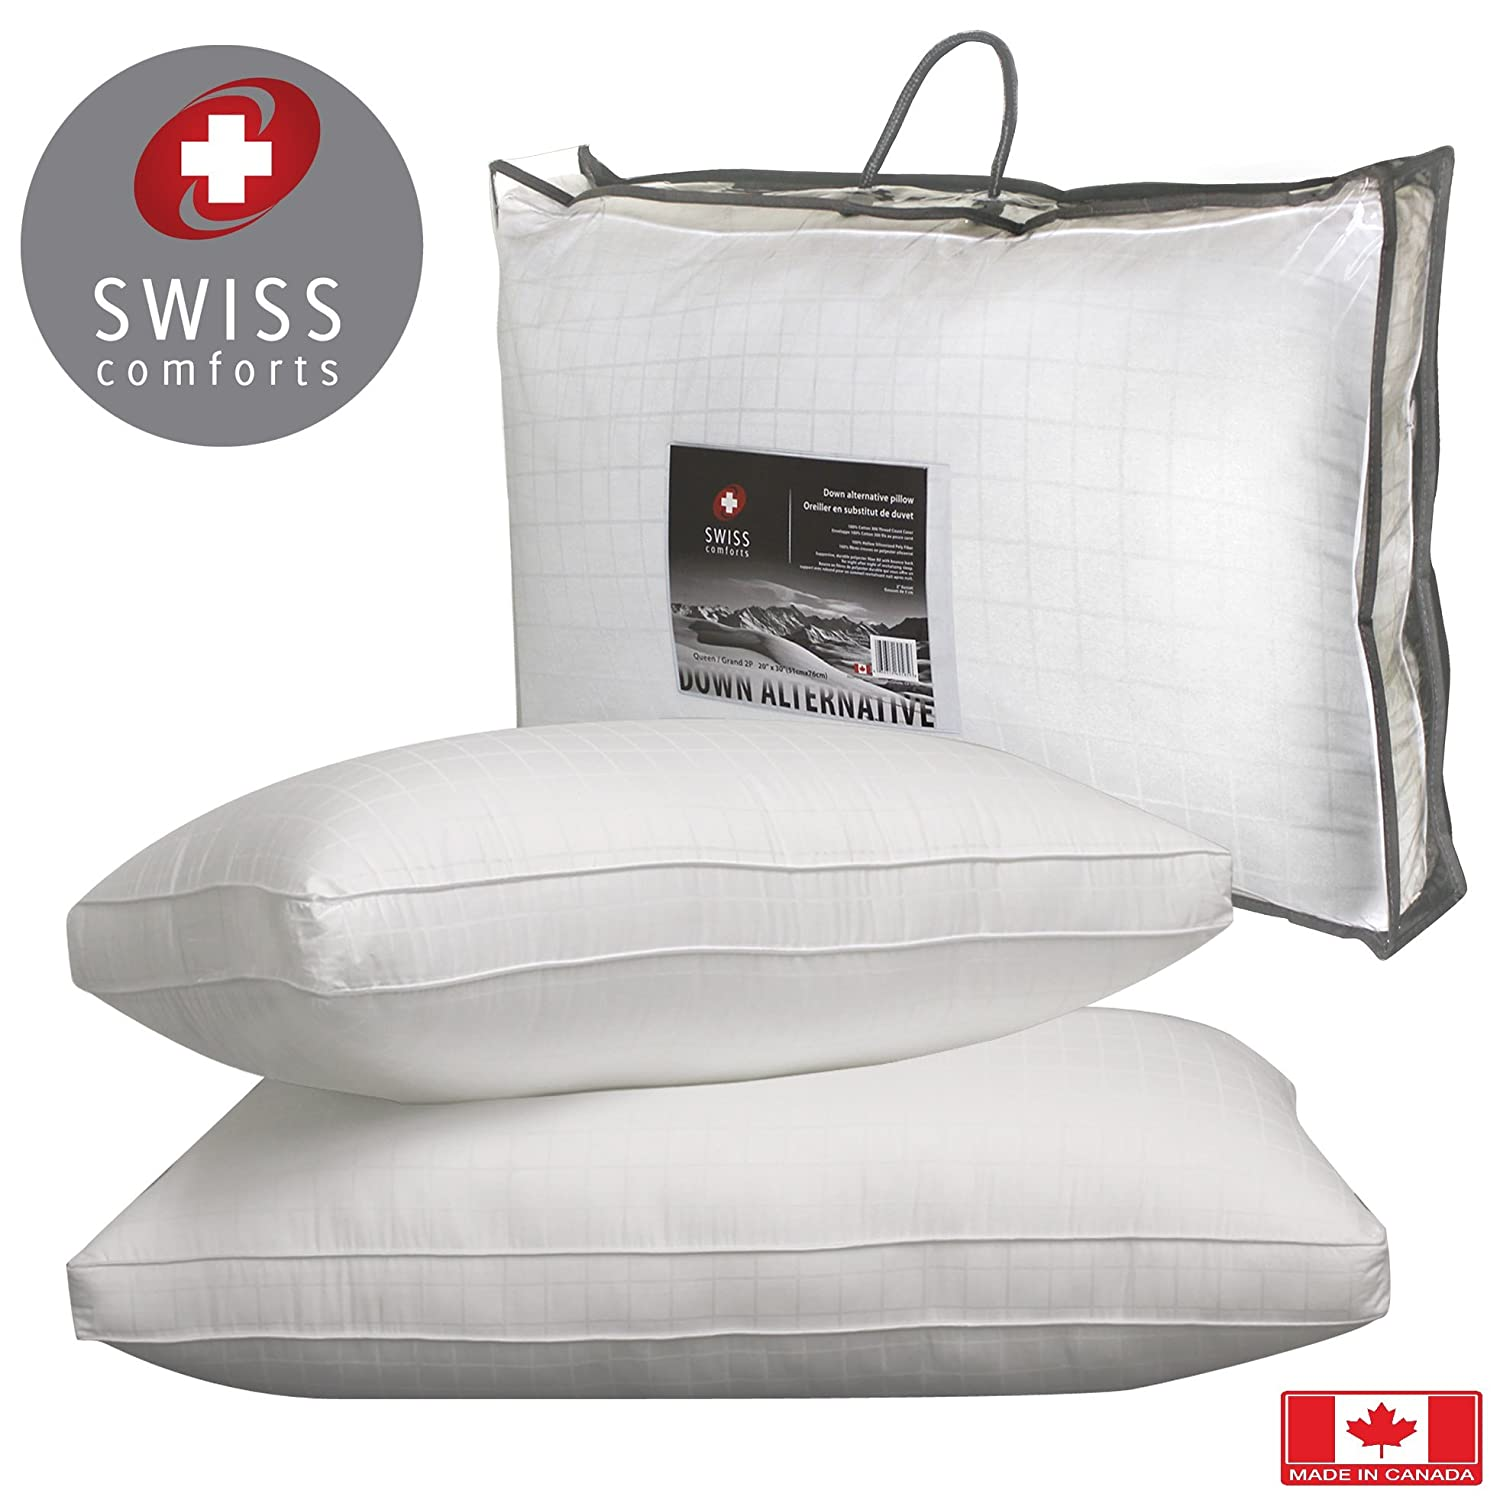 """Swiss Comforts Down Alternative Pillow, 300TC Cotton, 2"""" Gusset, Filled with 100% Holo Siliconized cluster fibre, double piping, square design (Standard 2-Pack)"""